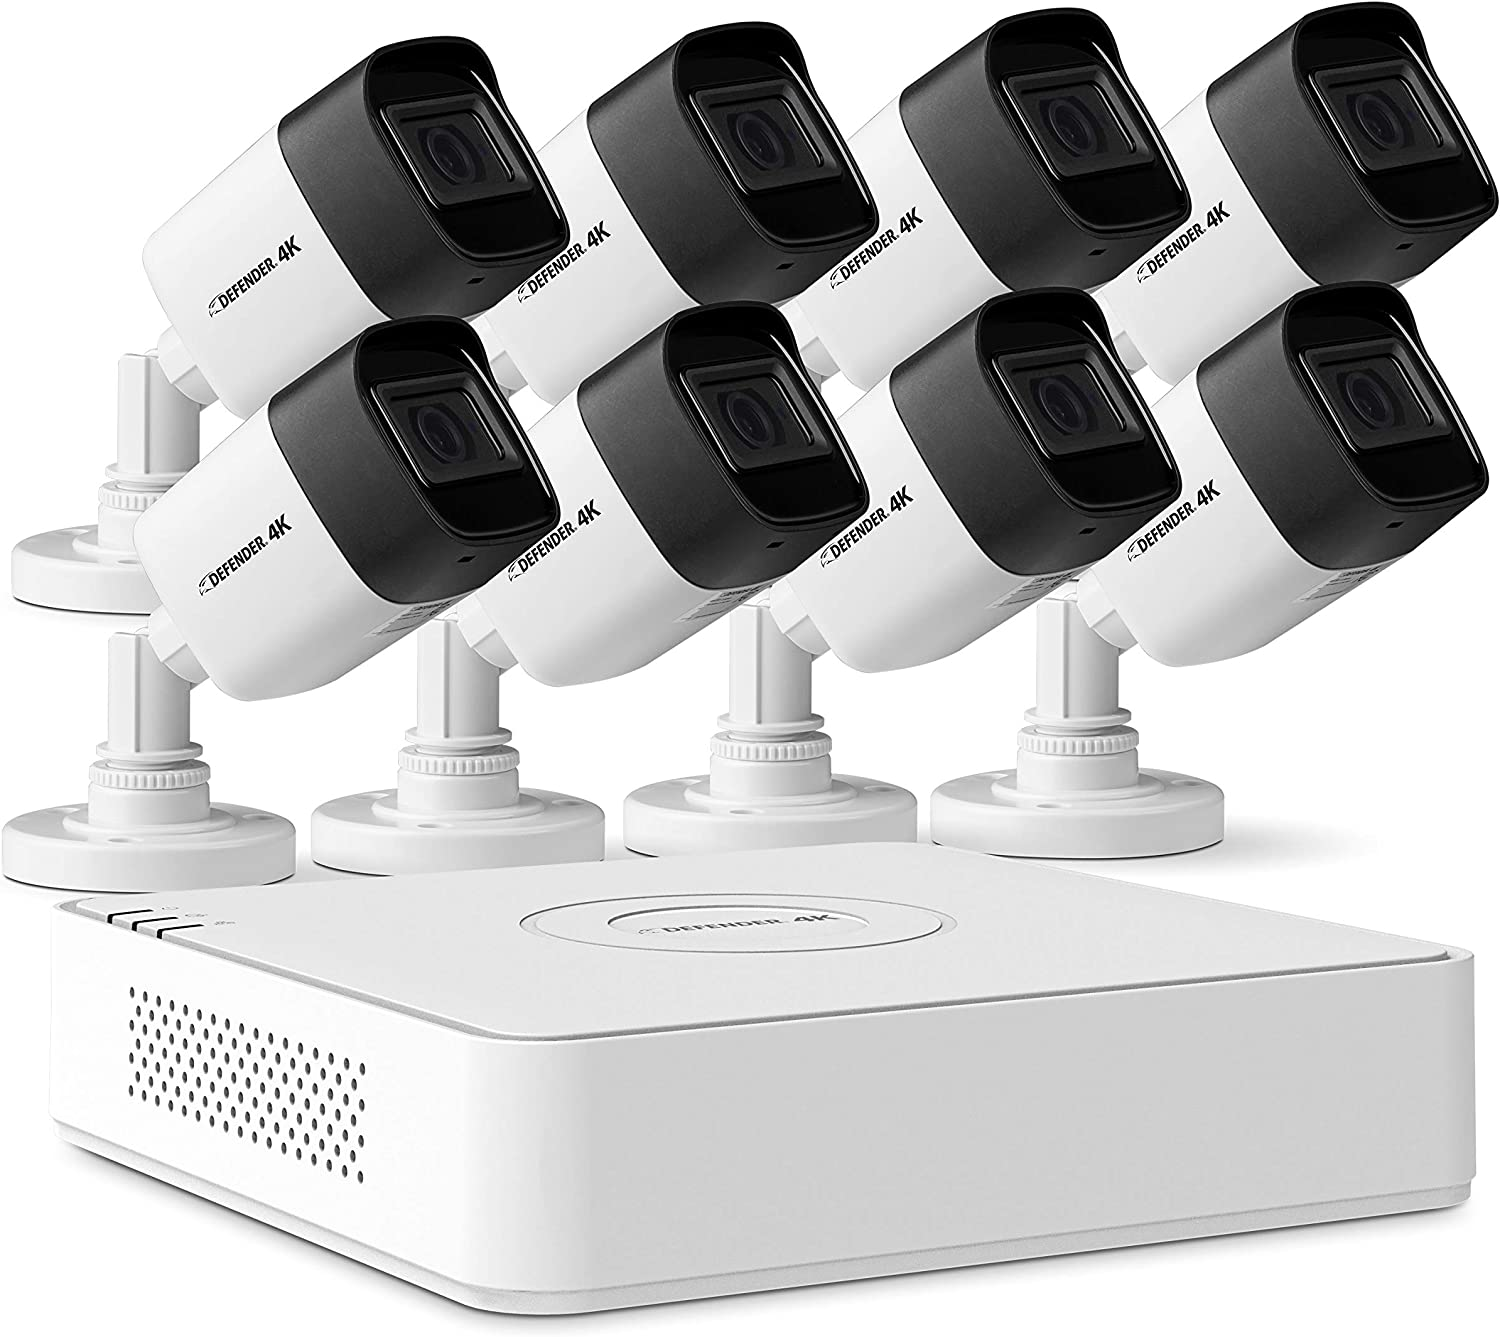 Defender 4k Ultra HD Wired Reservation Vision Max 90% OFF Cameras- Security Night Mobil